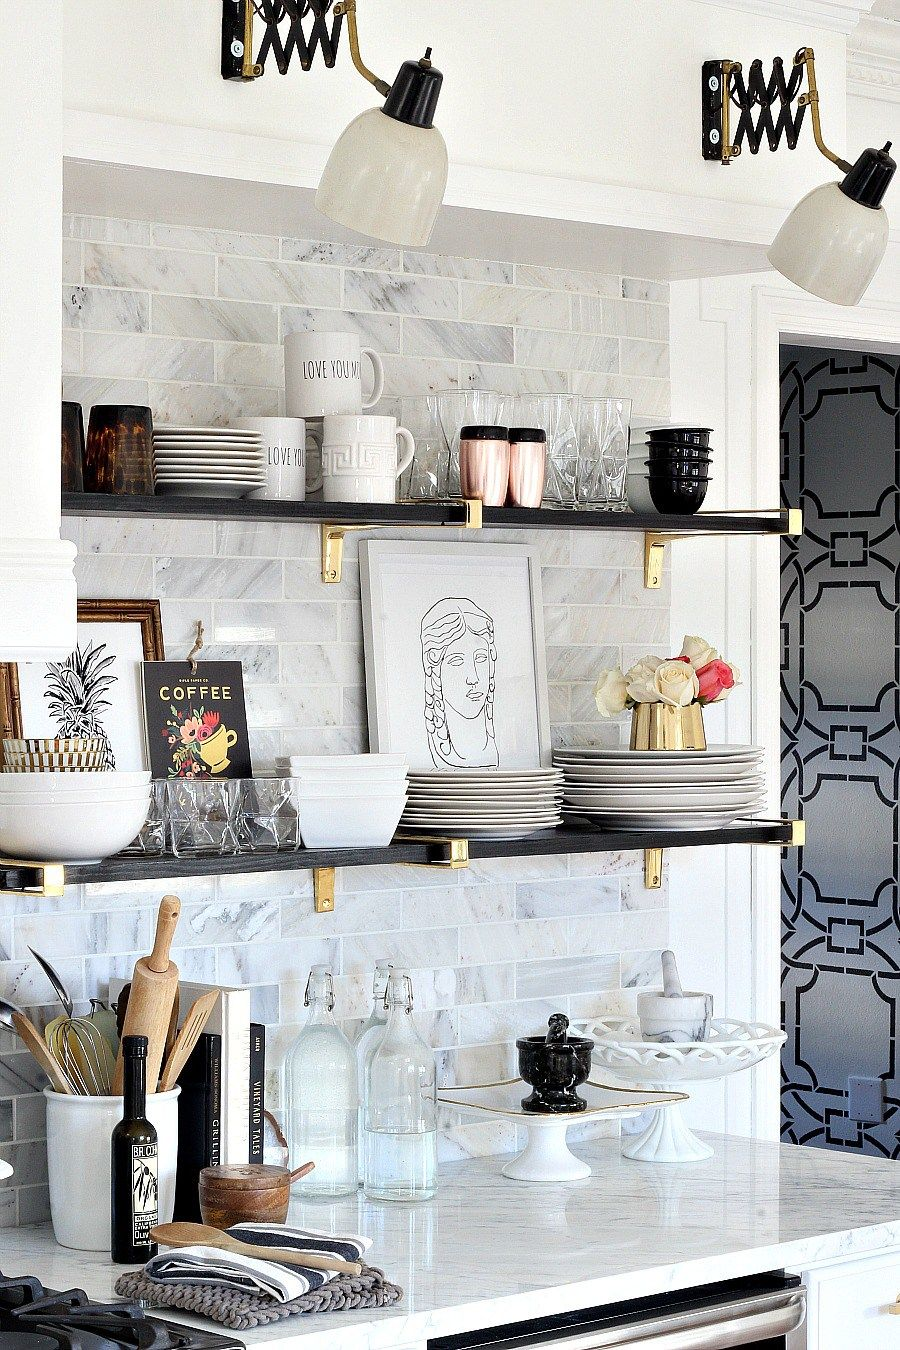 Black Gold Marble And Glam Kitchen Makeover Reveal With Open